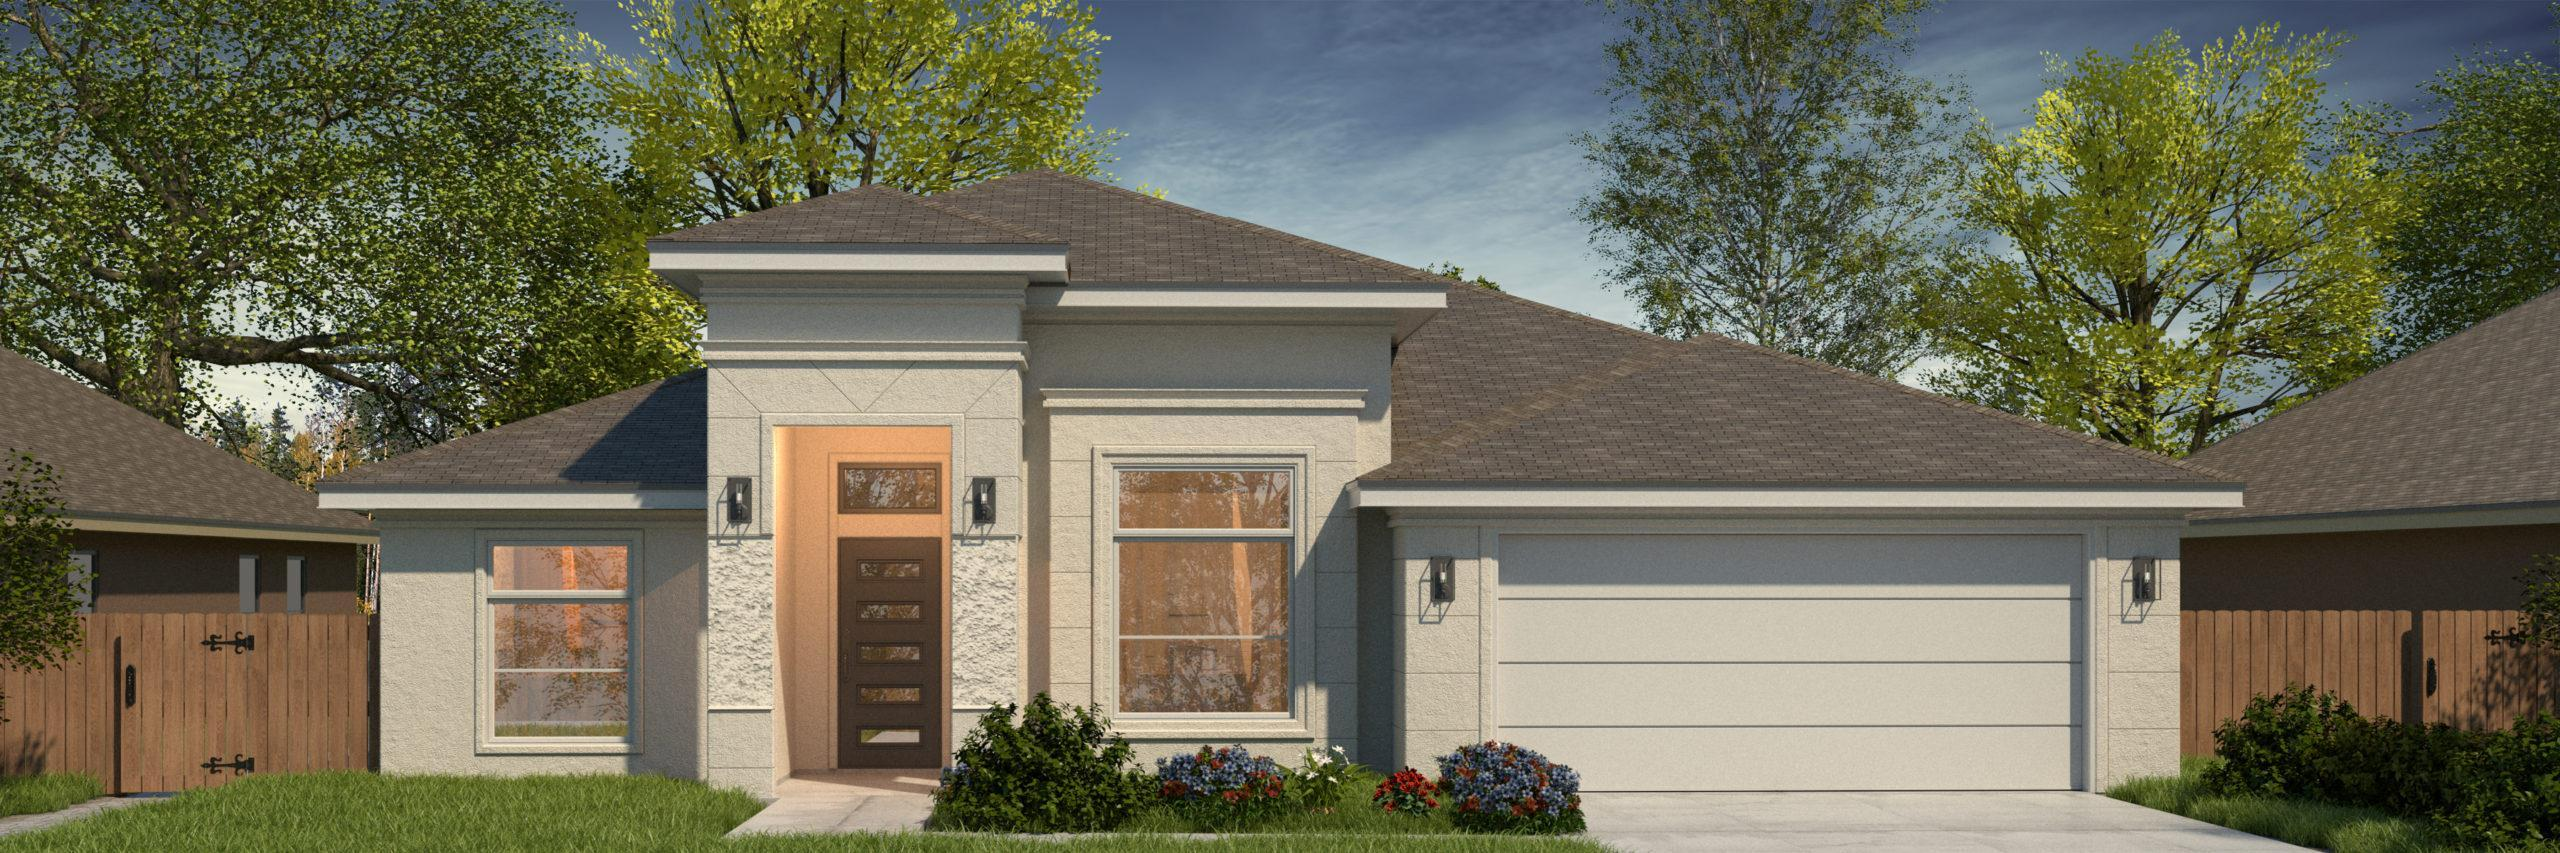 Exterior featured in the Angelica II By WestWind Homes in Rio Grande Valley, TX